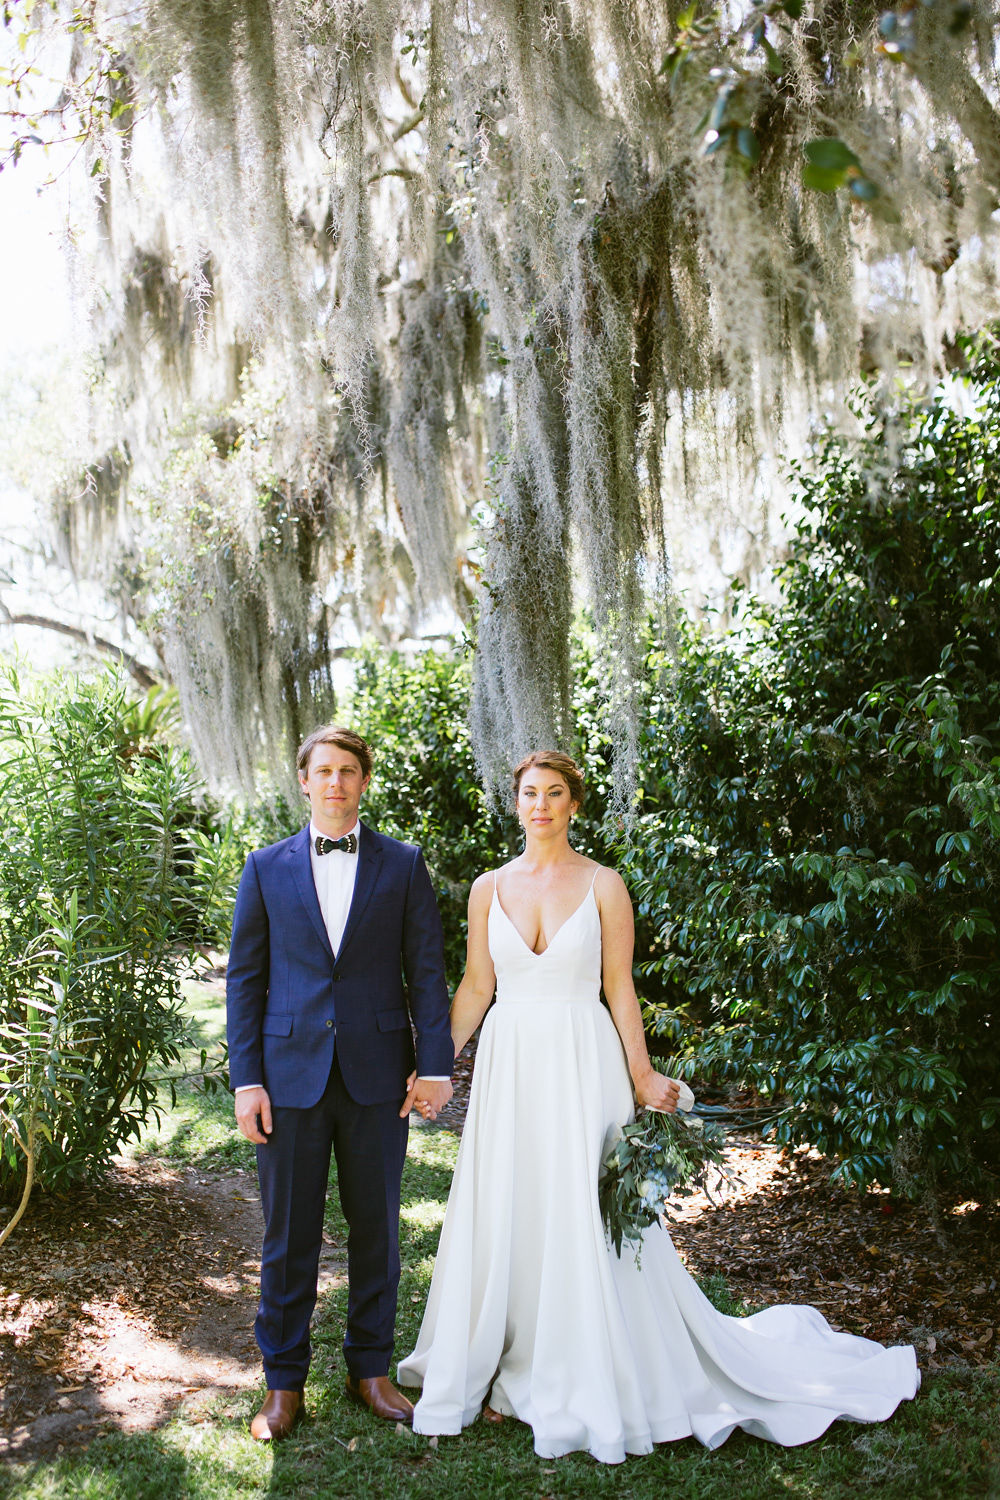 Edisto Island Wedding at Cypress Trees Plantation - Charleston Destination Luxury Wedding Planner - Scarlet Plan & Design (31).jpg